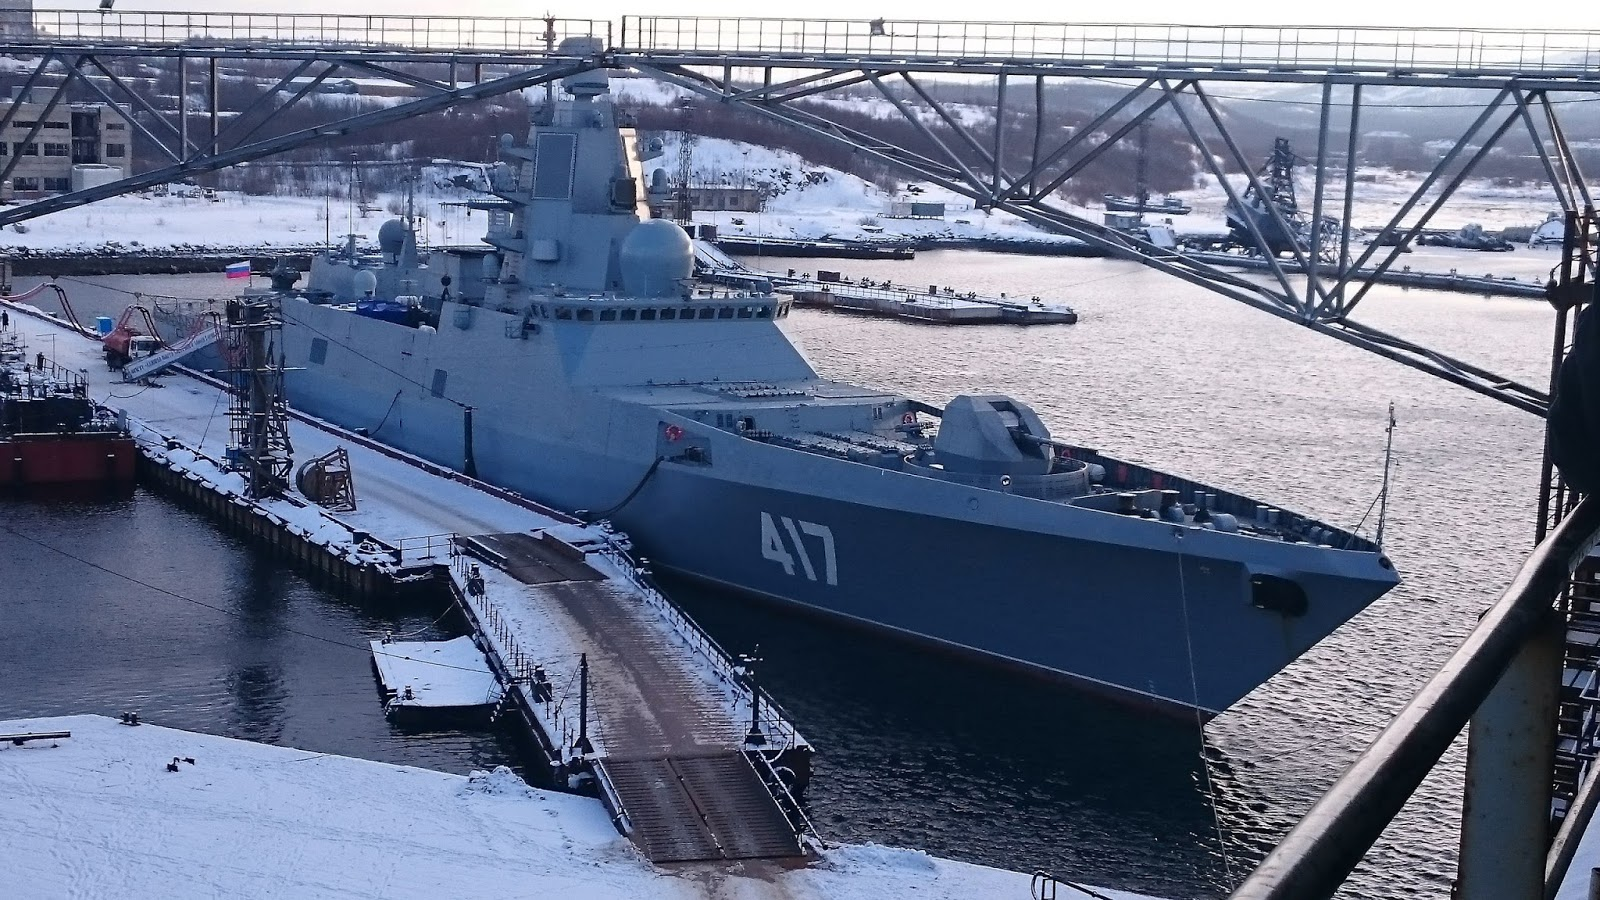 """Military and Commercial Technology: """"Admiral Gorshkov"""" project 22350 undergoing a final testing ..."""